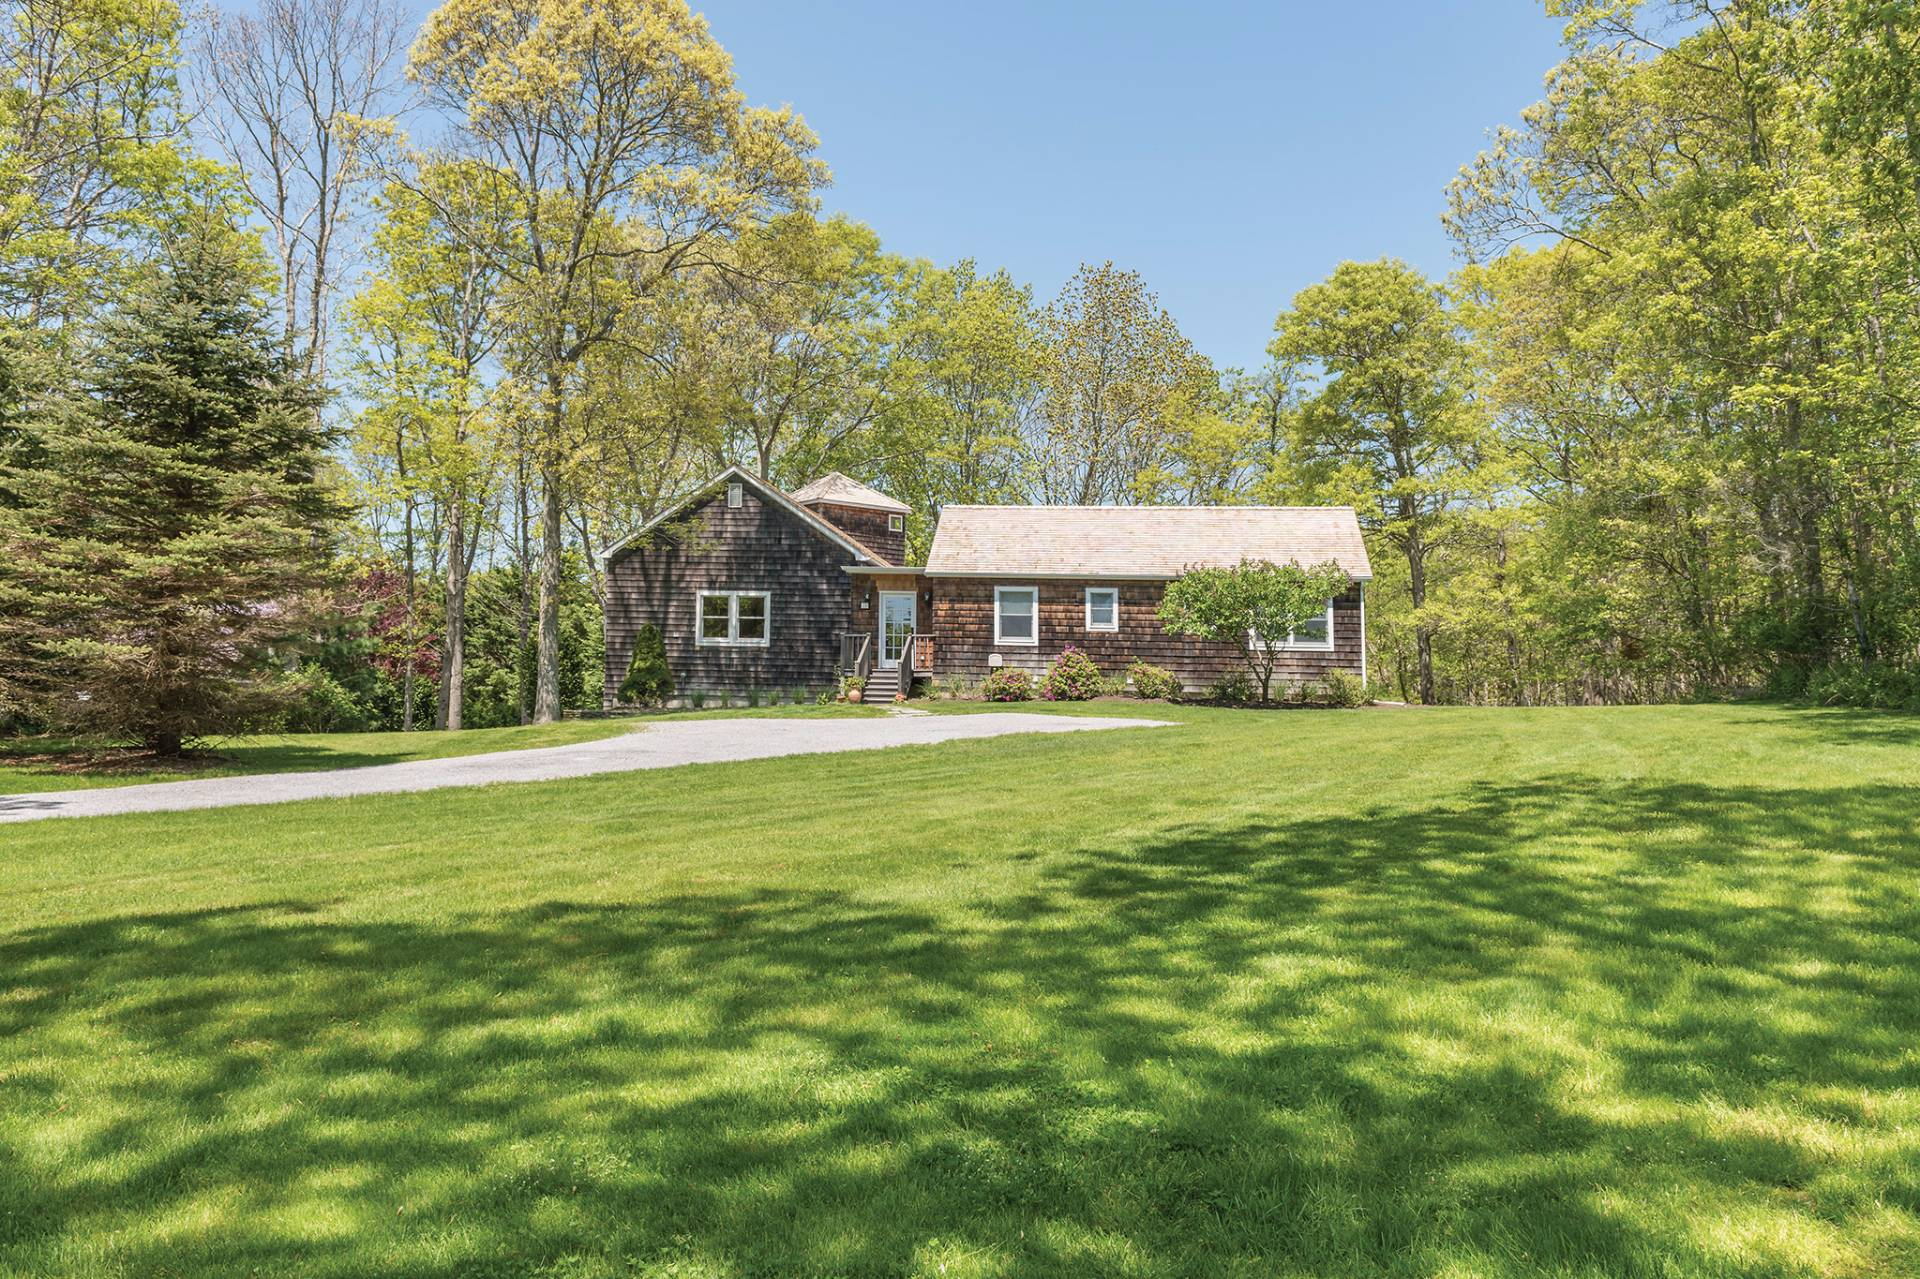 Single Family Home for Sale at Located In Coveted Dune Alpin Association 24 Horseshoe Drive North, East Hampton, New York